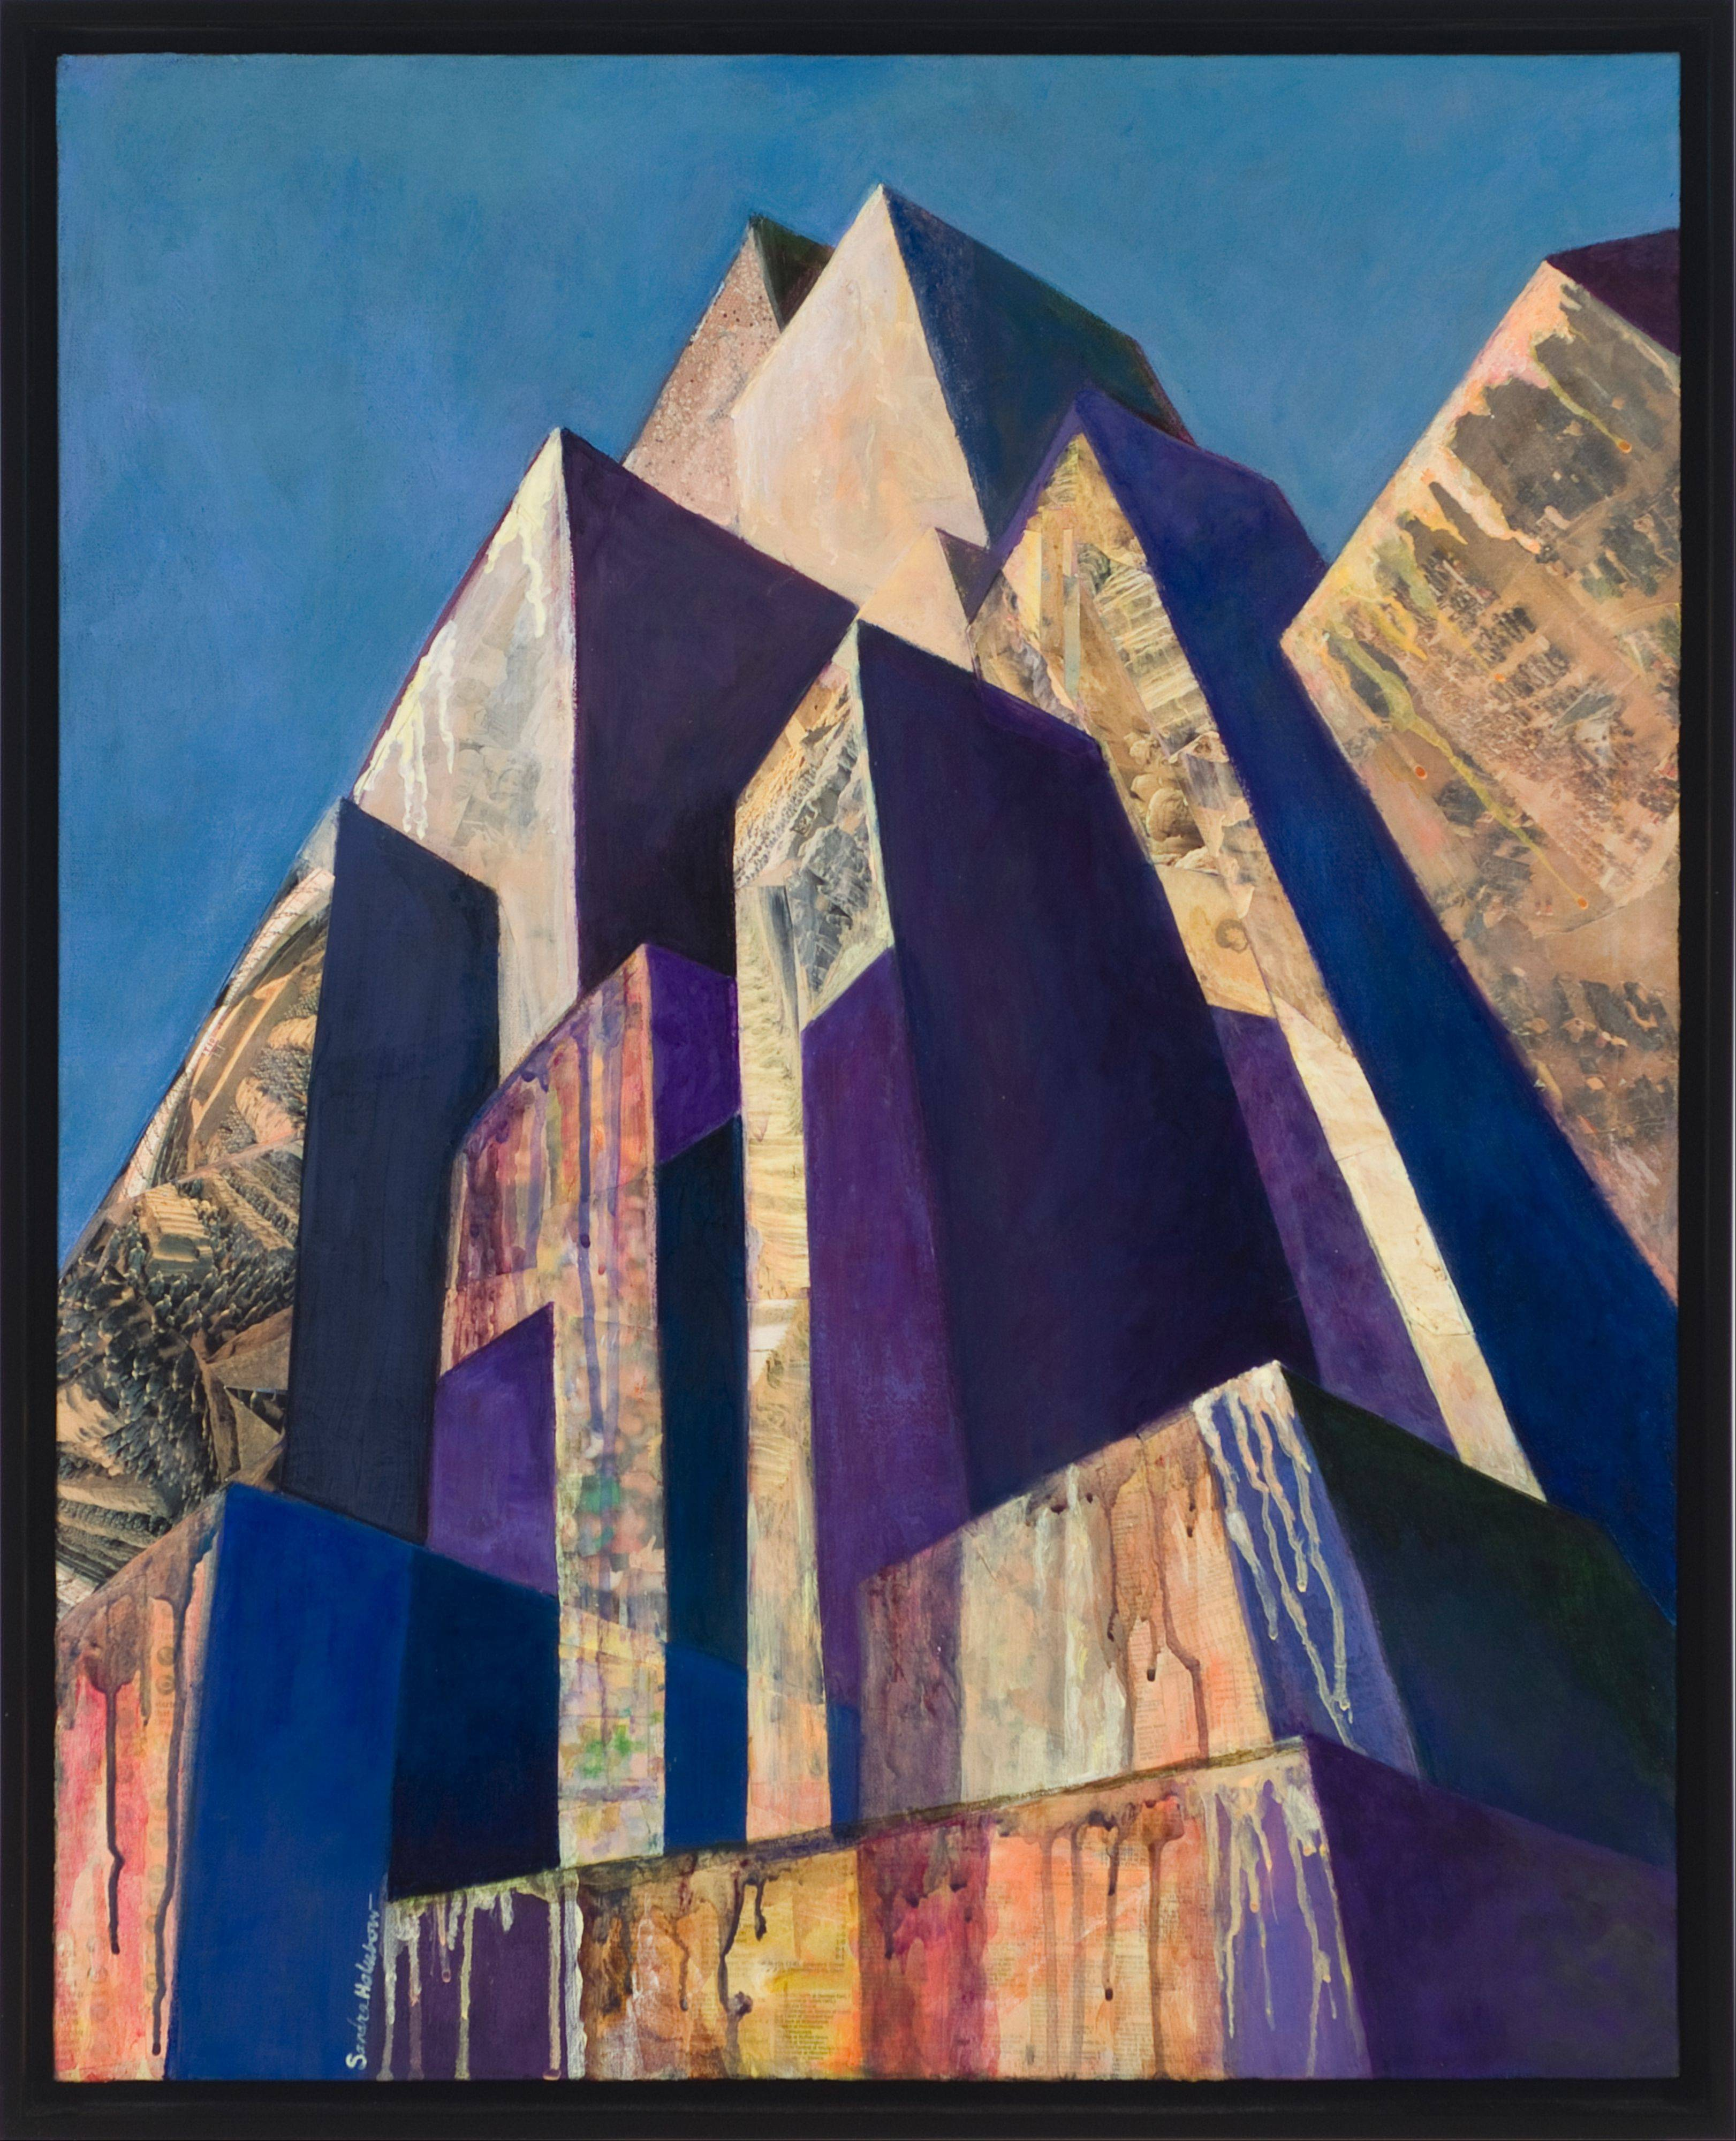 This art work by Sandra Holubow, titled Canyon, Collage, is part of an exhibit opening Thursday, Dec. 12, at Koehnline Museum in Des Plaines.